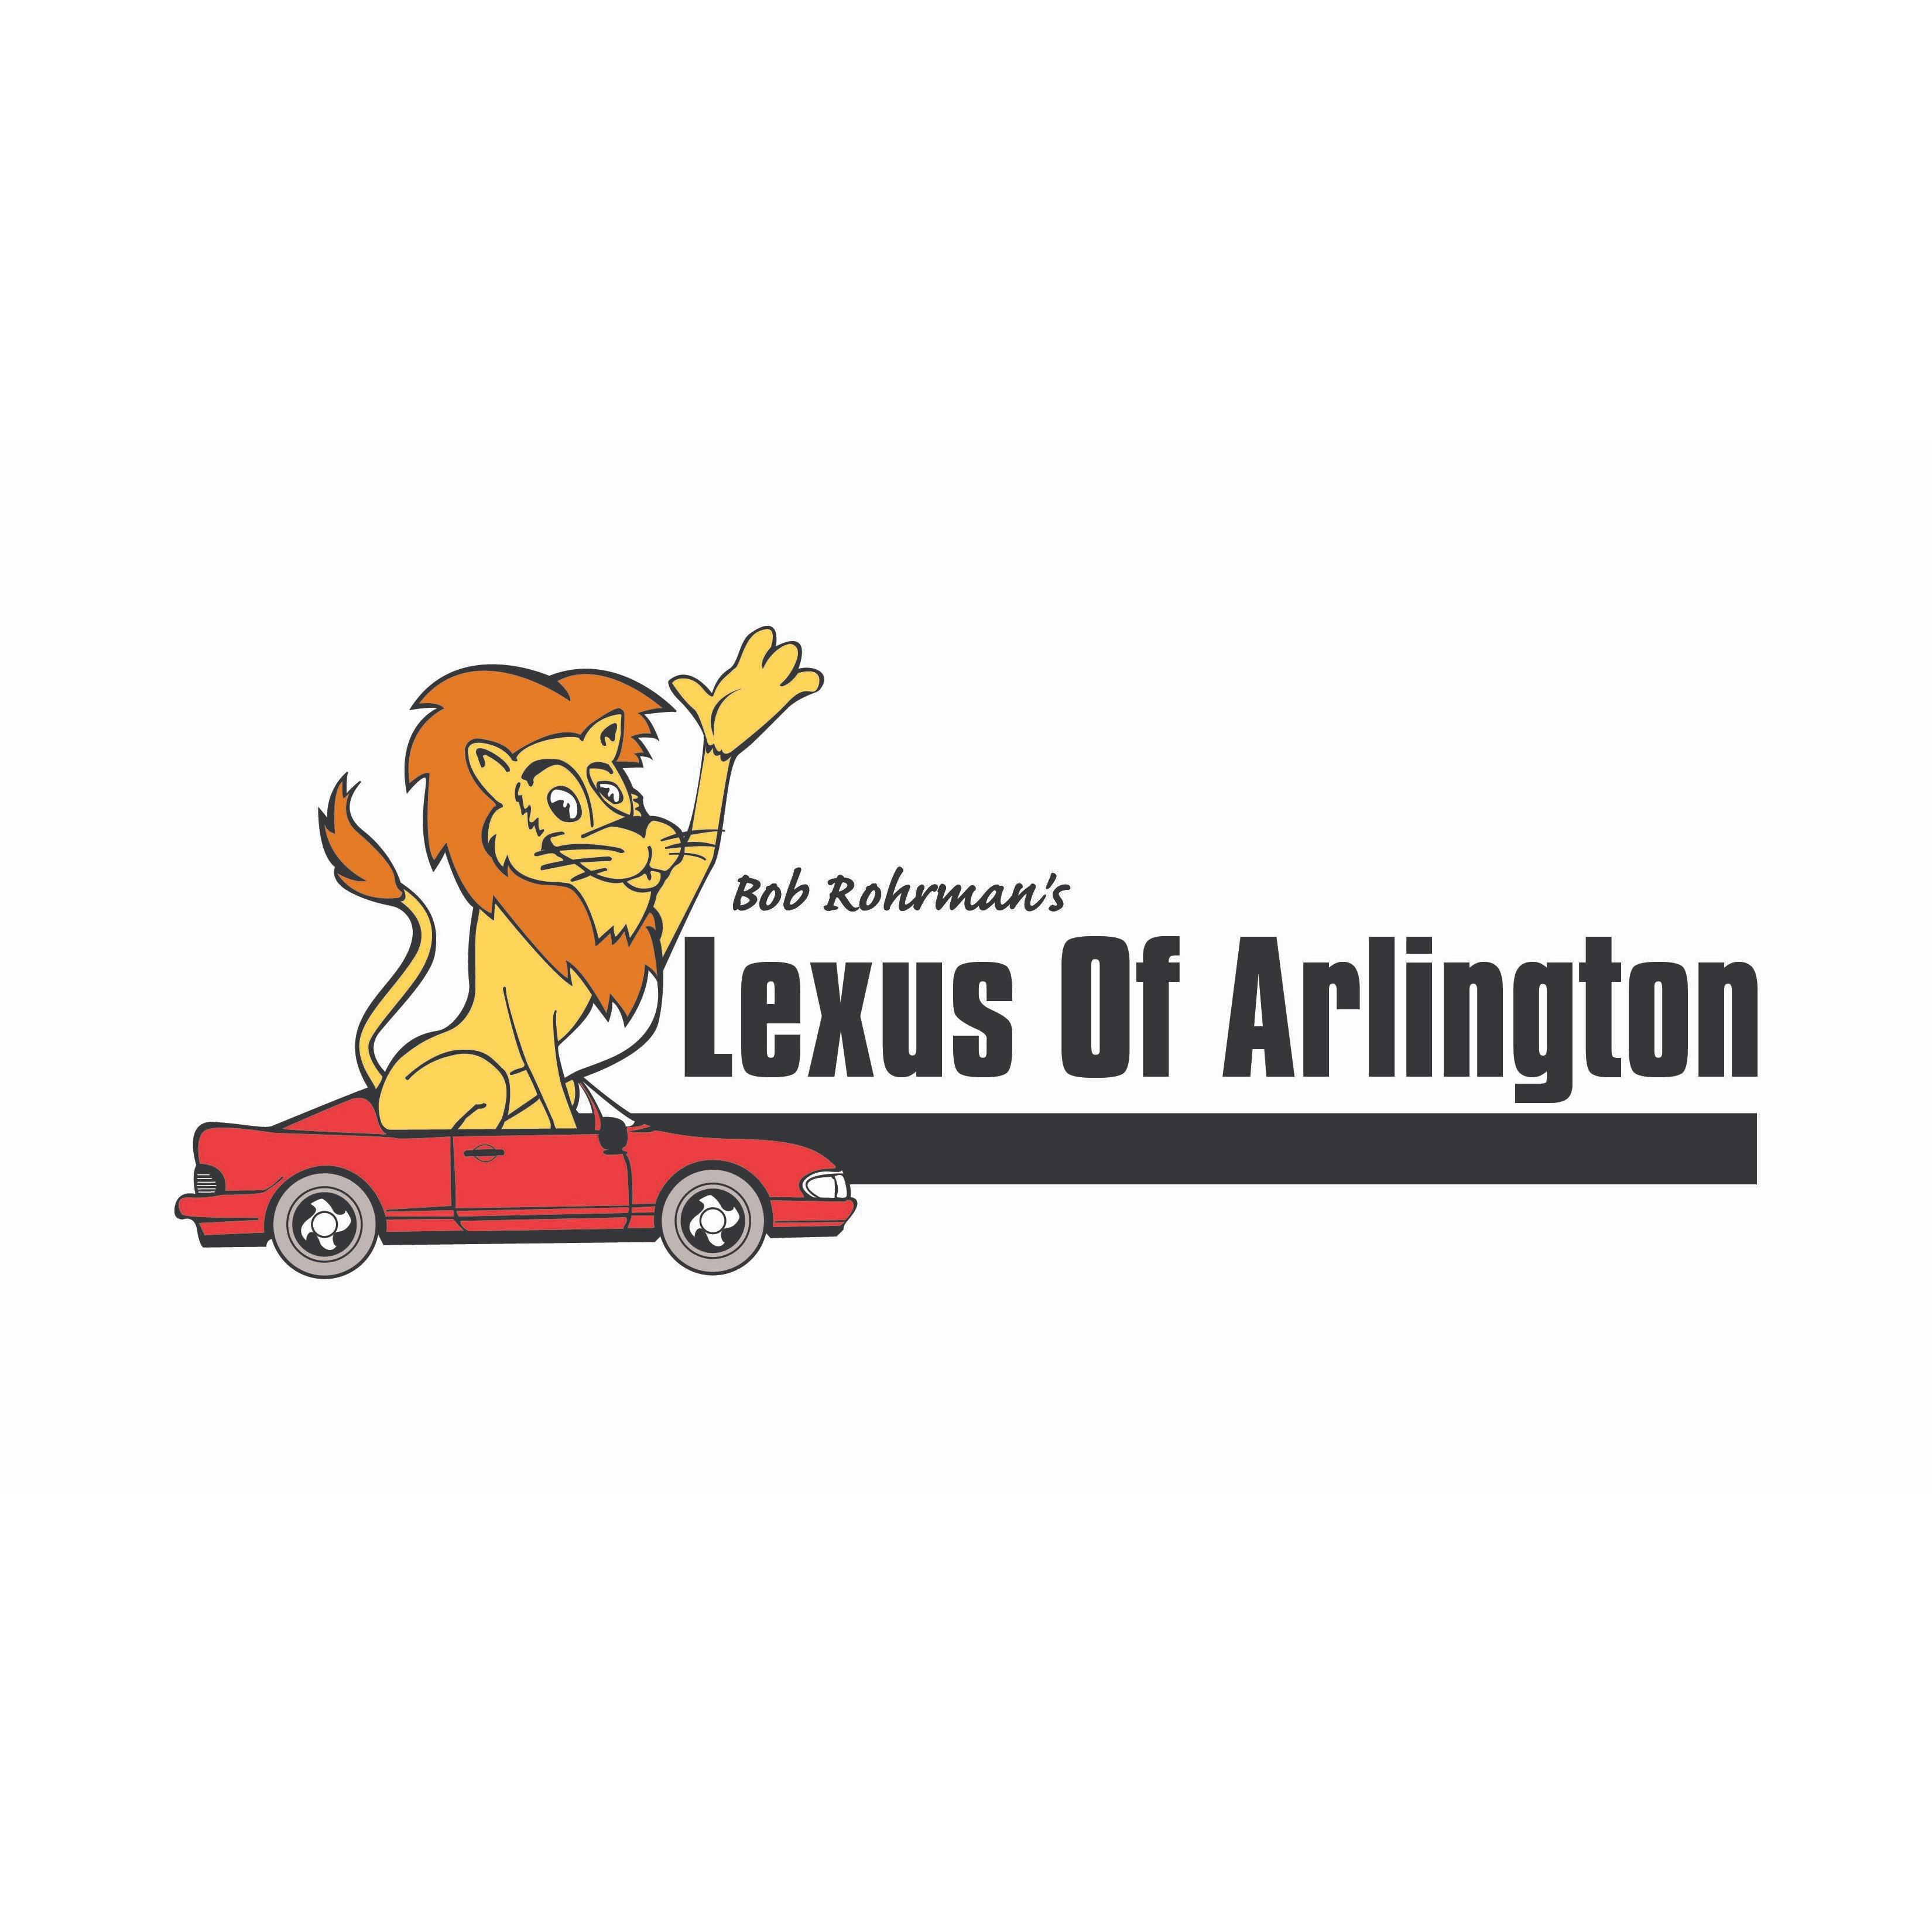 Lexus of Arlington